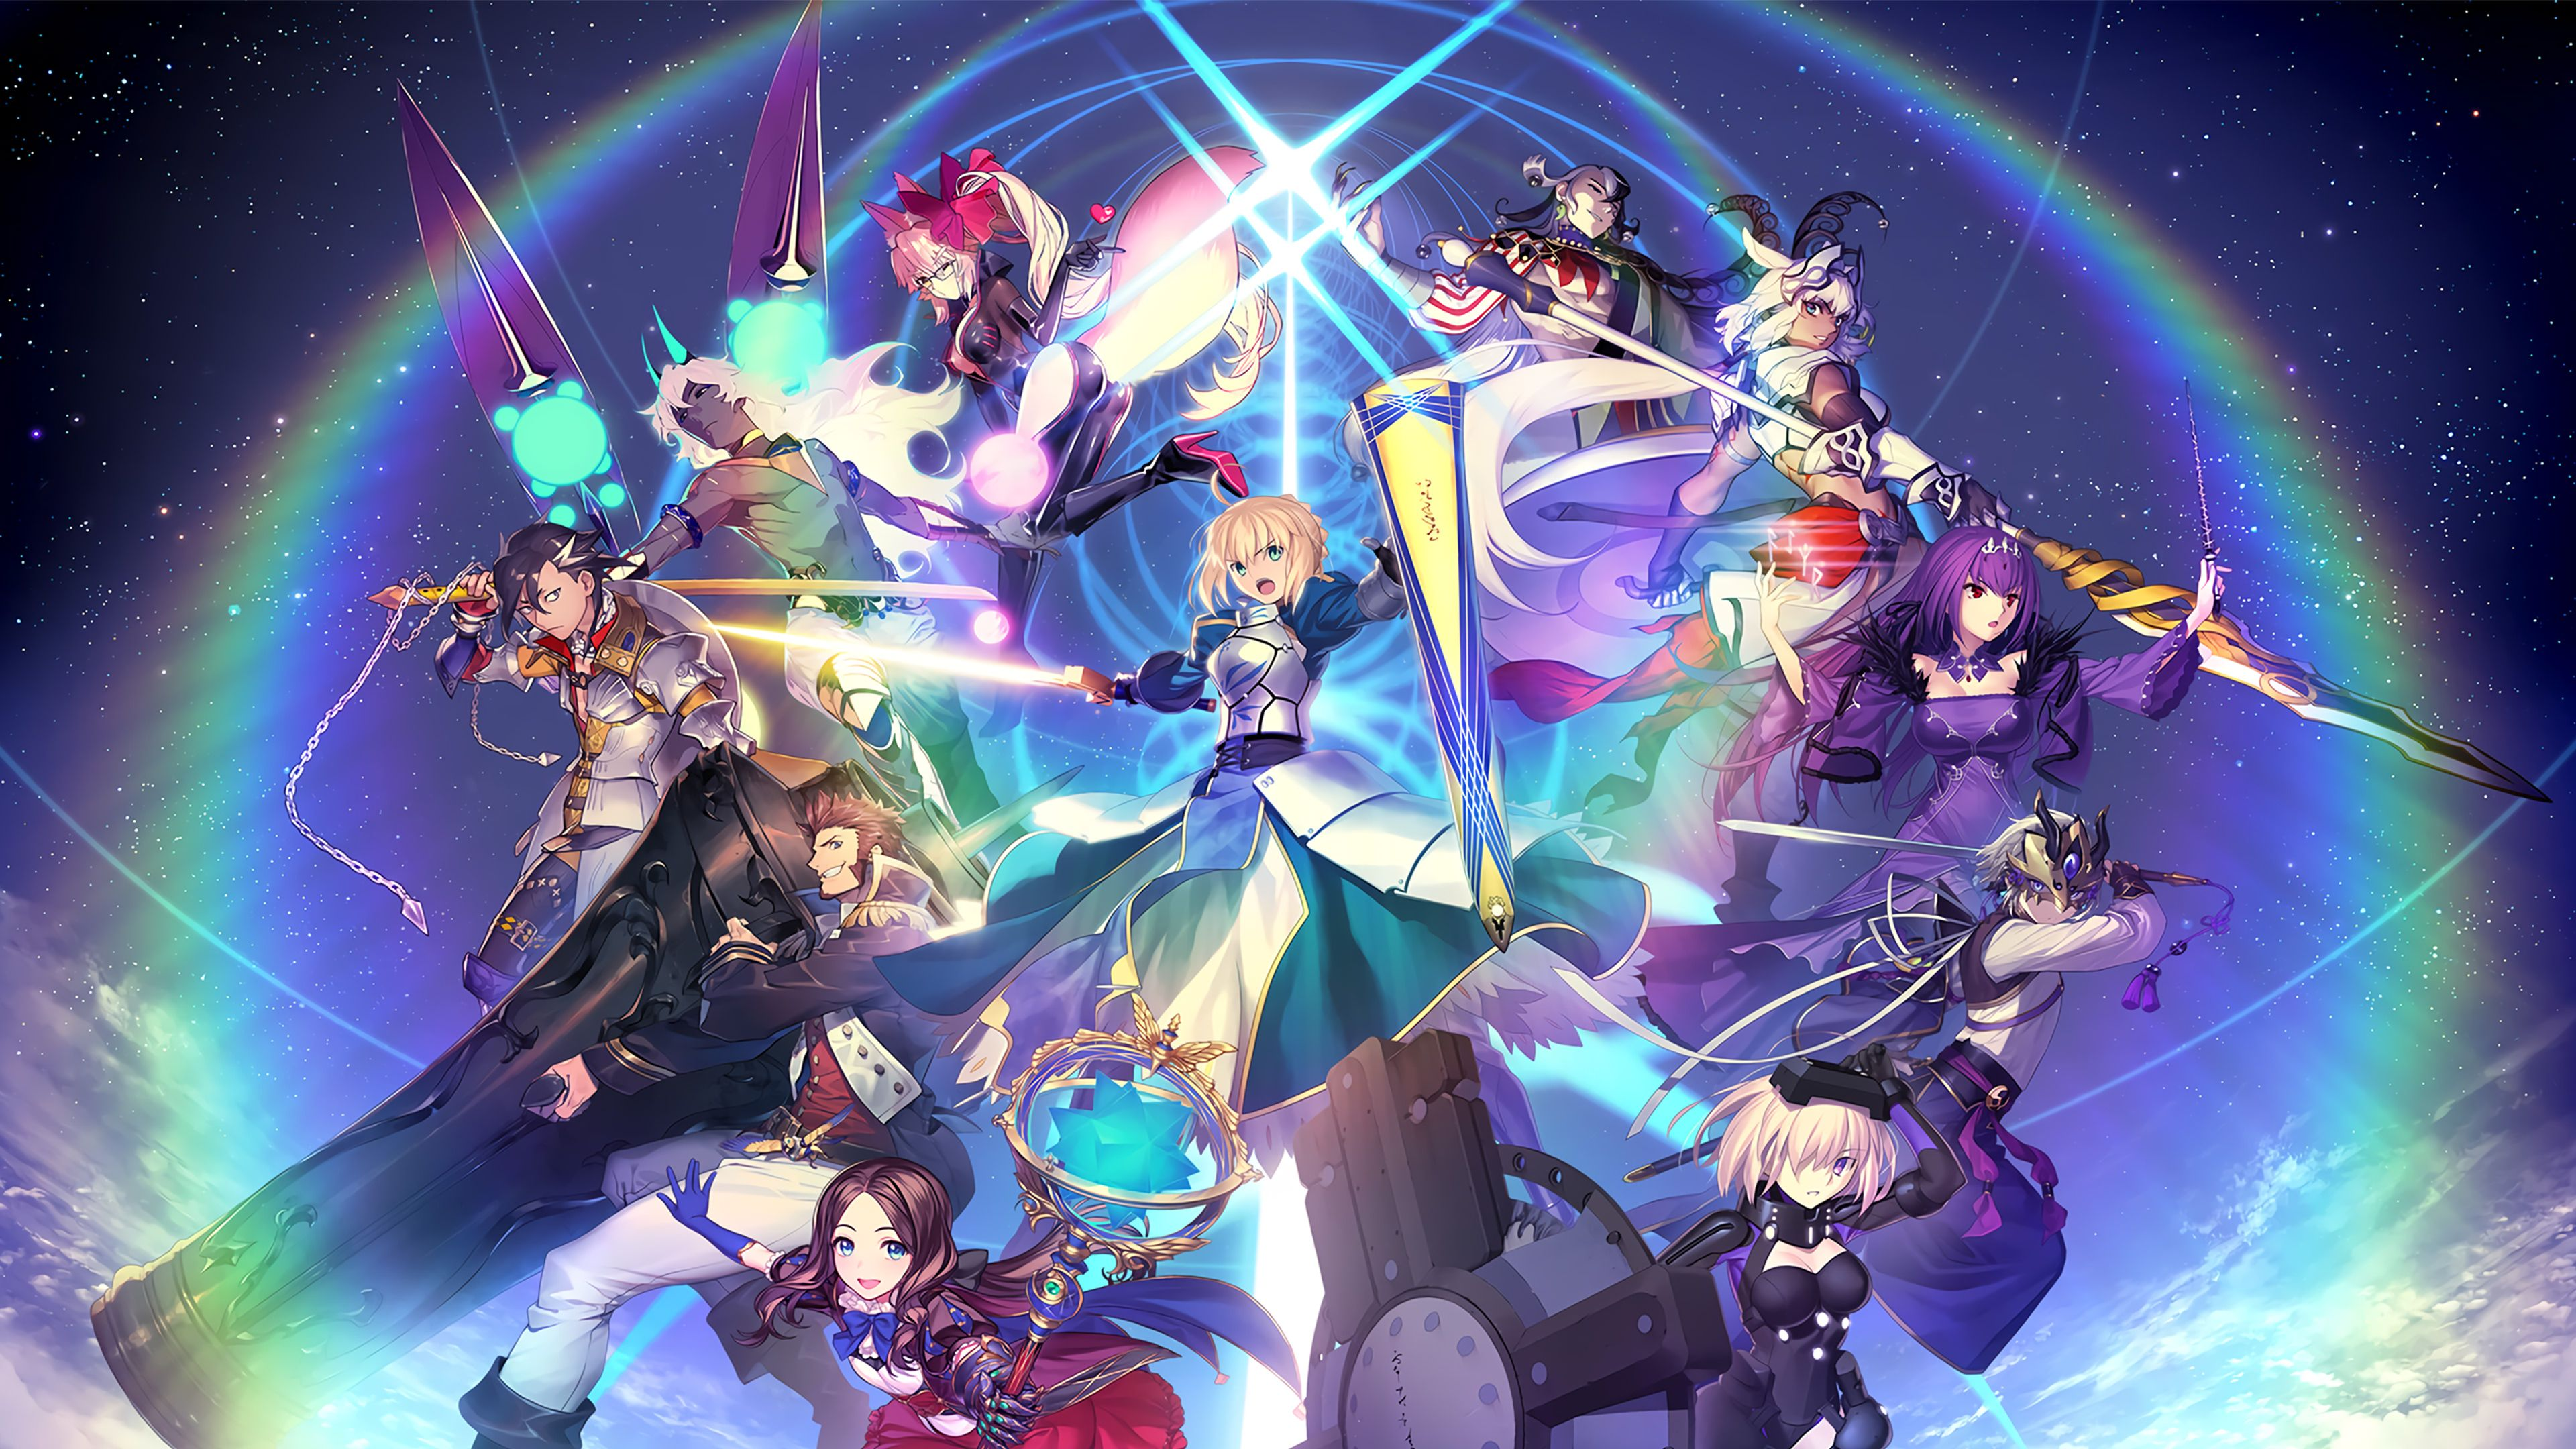 FateGrand Order Wallpapers   Top FateGrand Order 3840x2160